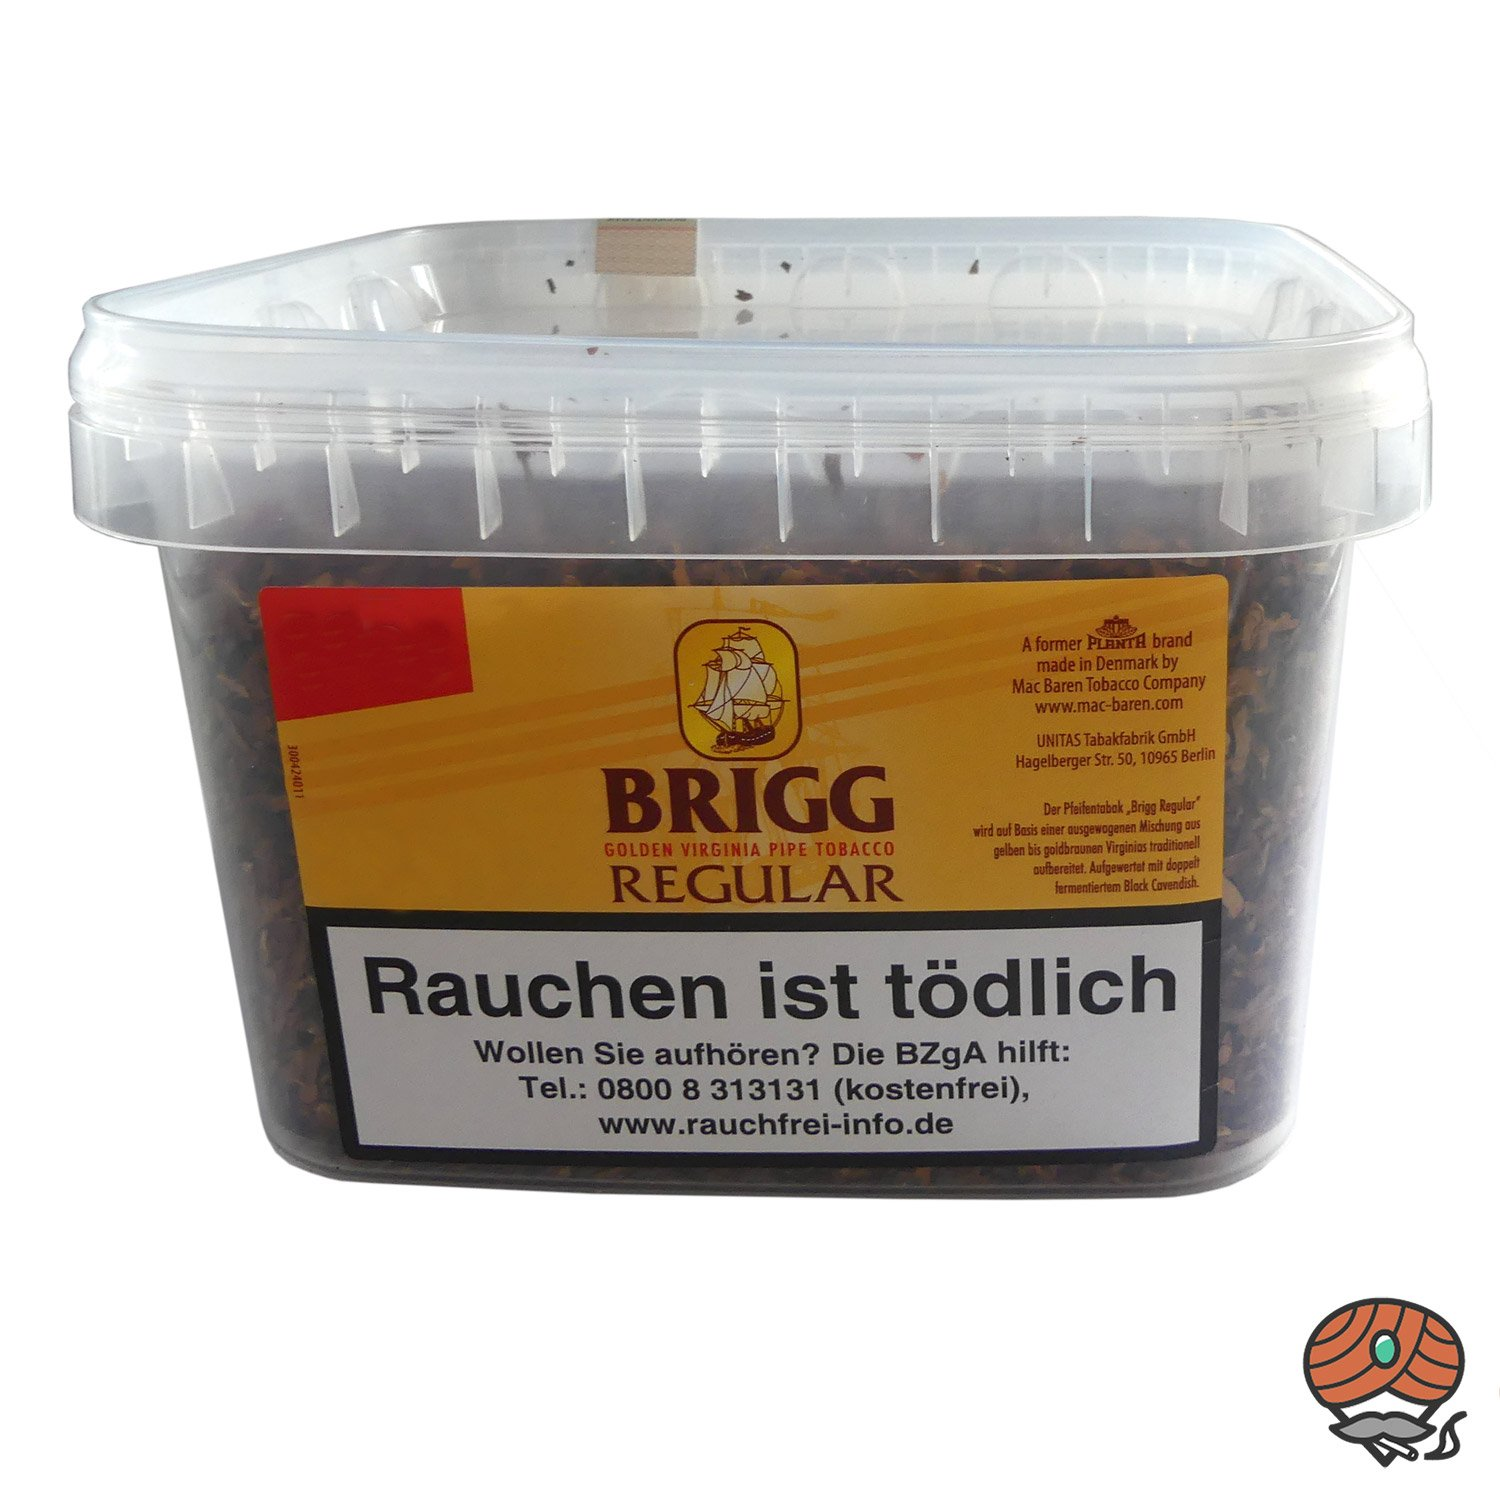 Brigg Regular Pfeifentabak (Golden Virginia Tabak) im 400g Eimer